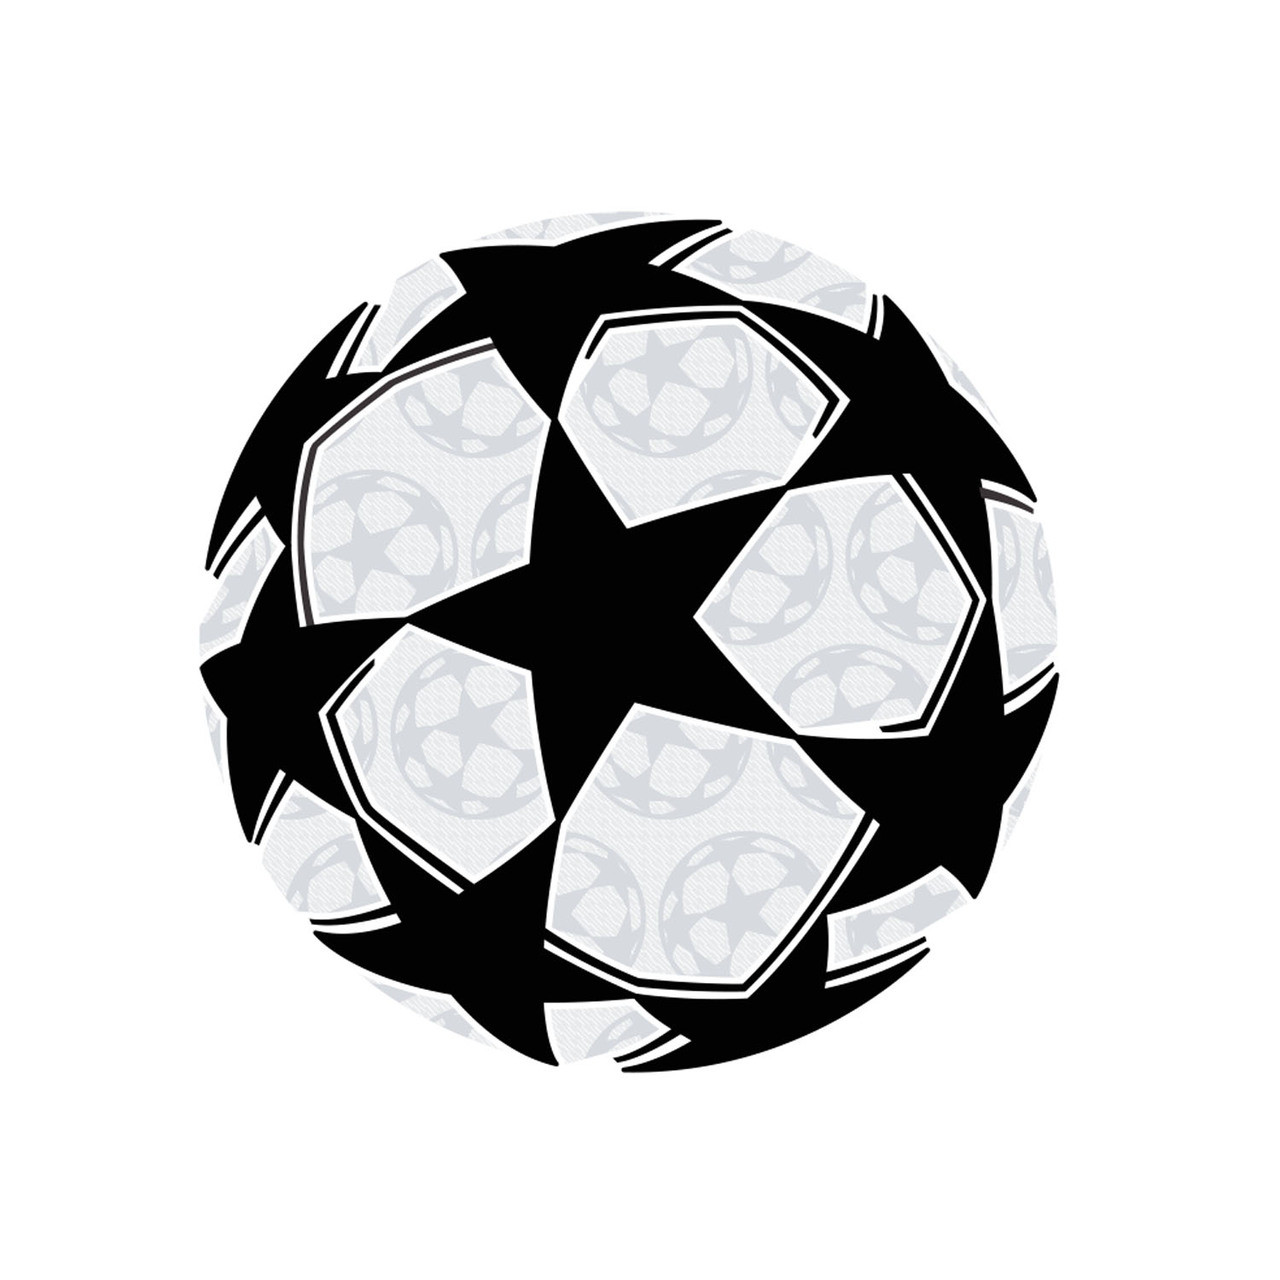 uefa champions league starball badge soccer plus uefa champions league starball badge